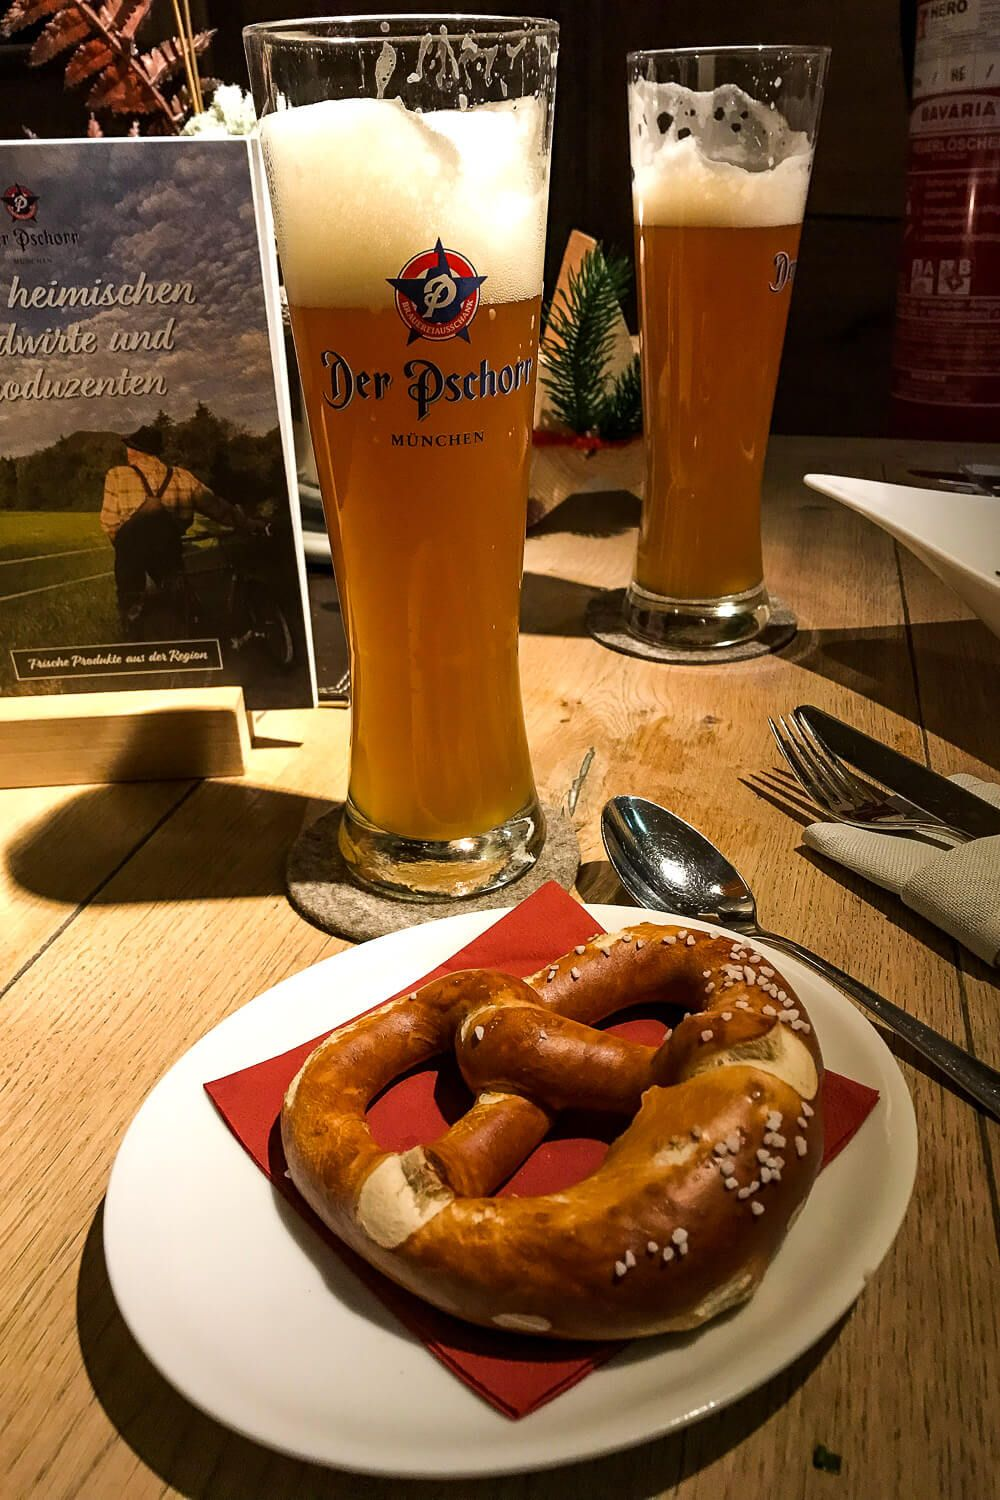 Pretzel in Munich